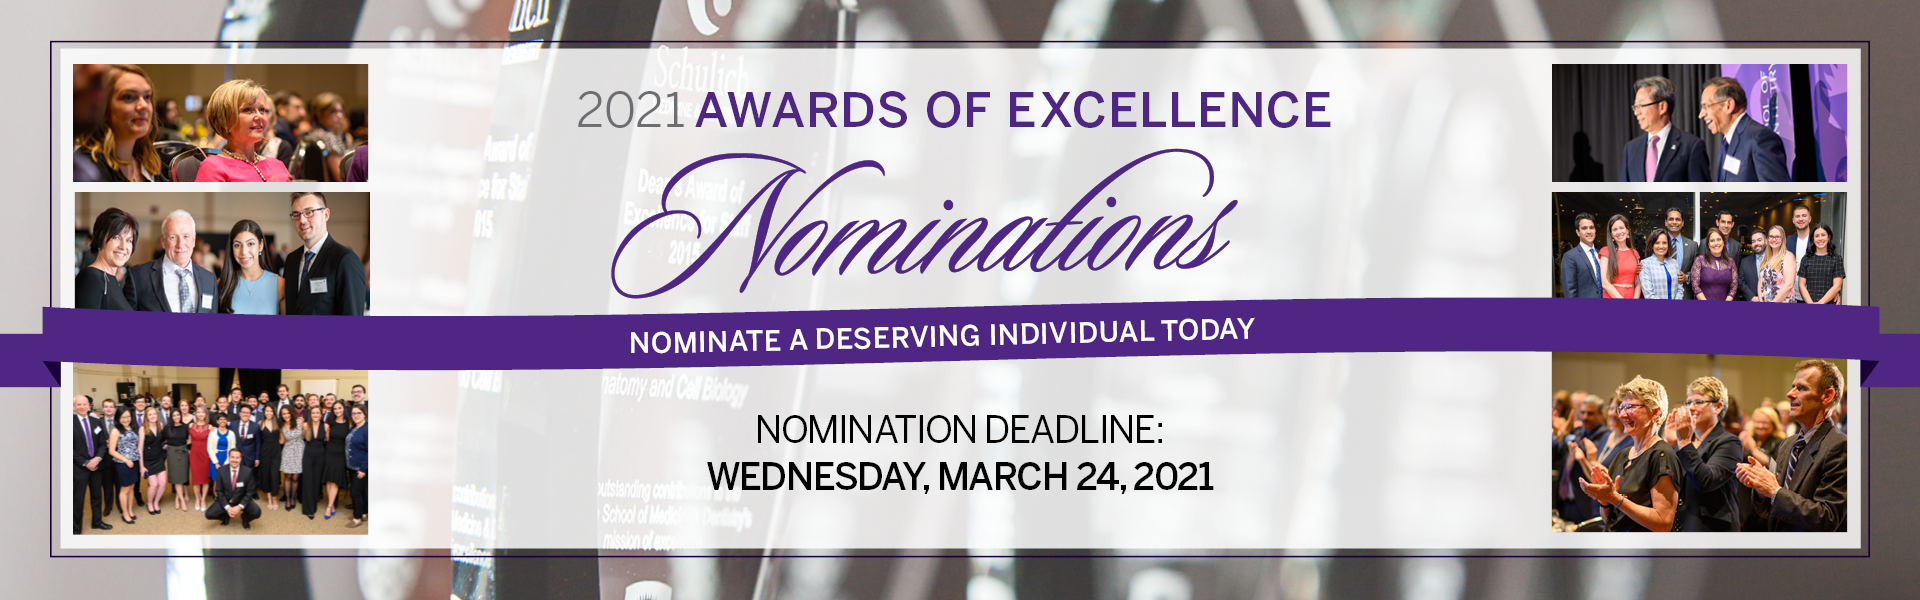 Awards of Excellence Nominations